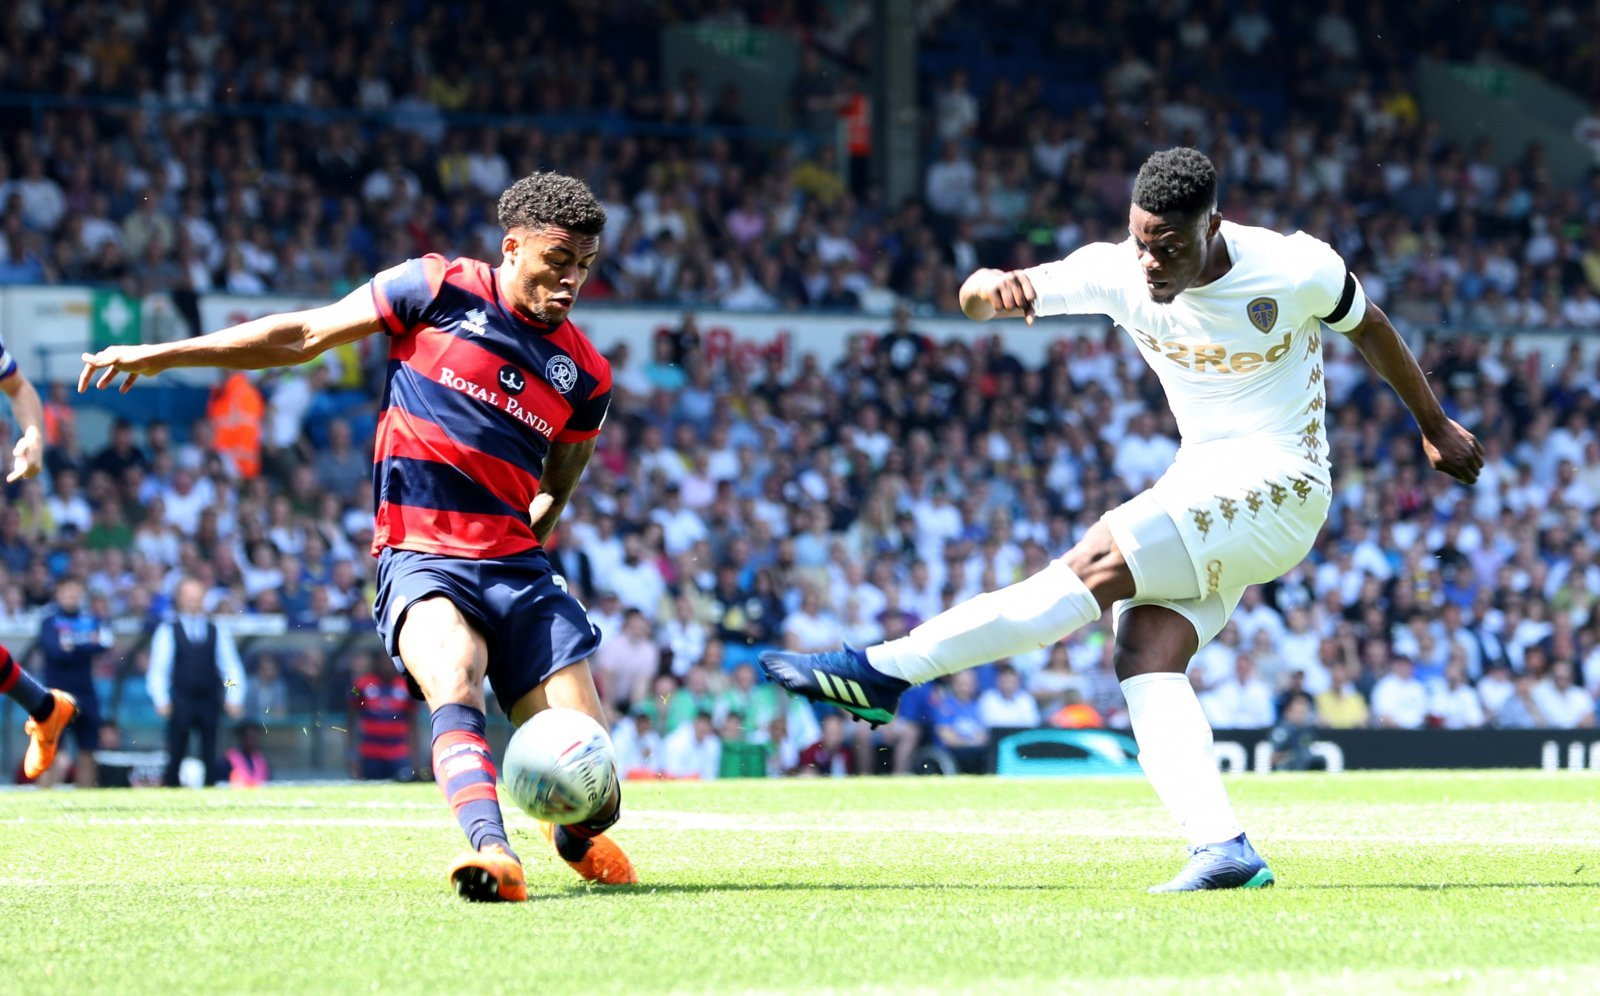 Leeds United: Fans reacted to Caleb Ekuban's hat-trick for Trabzonspor in Europa League